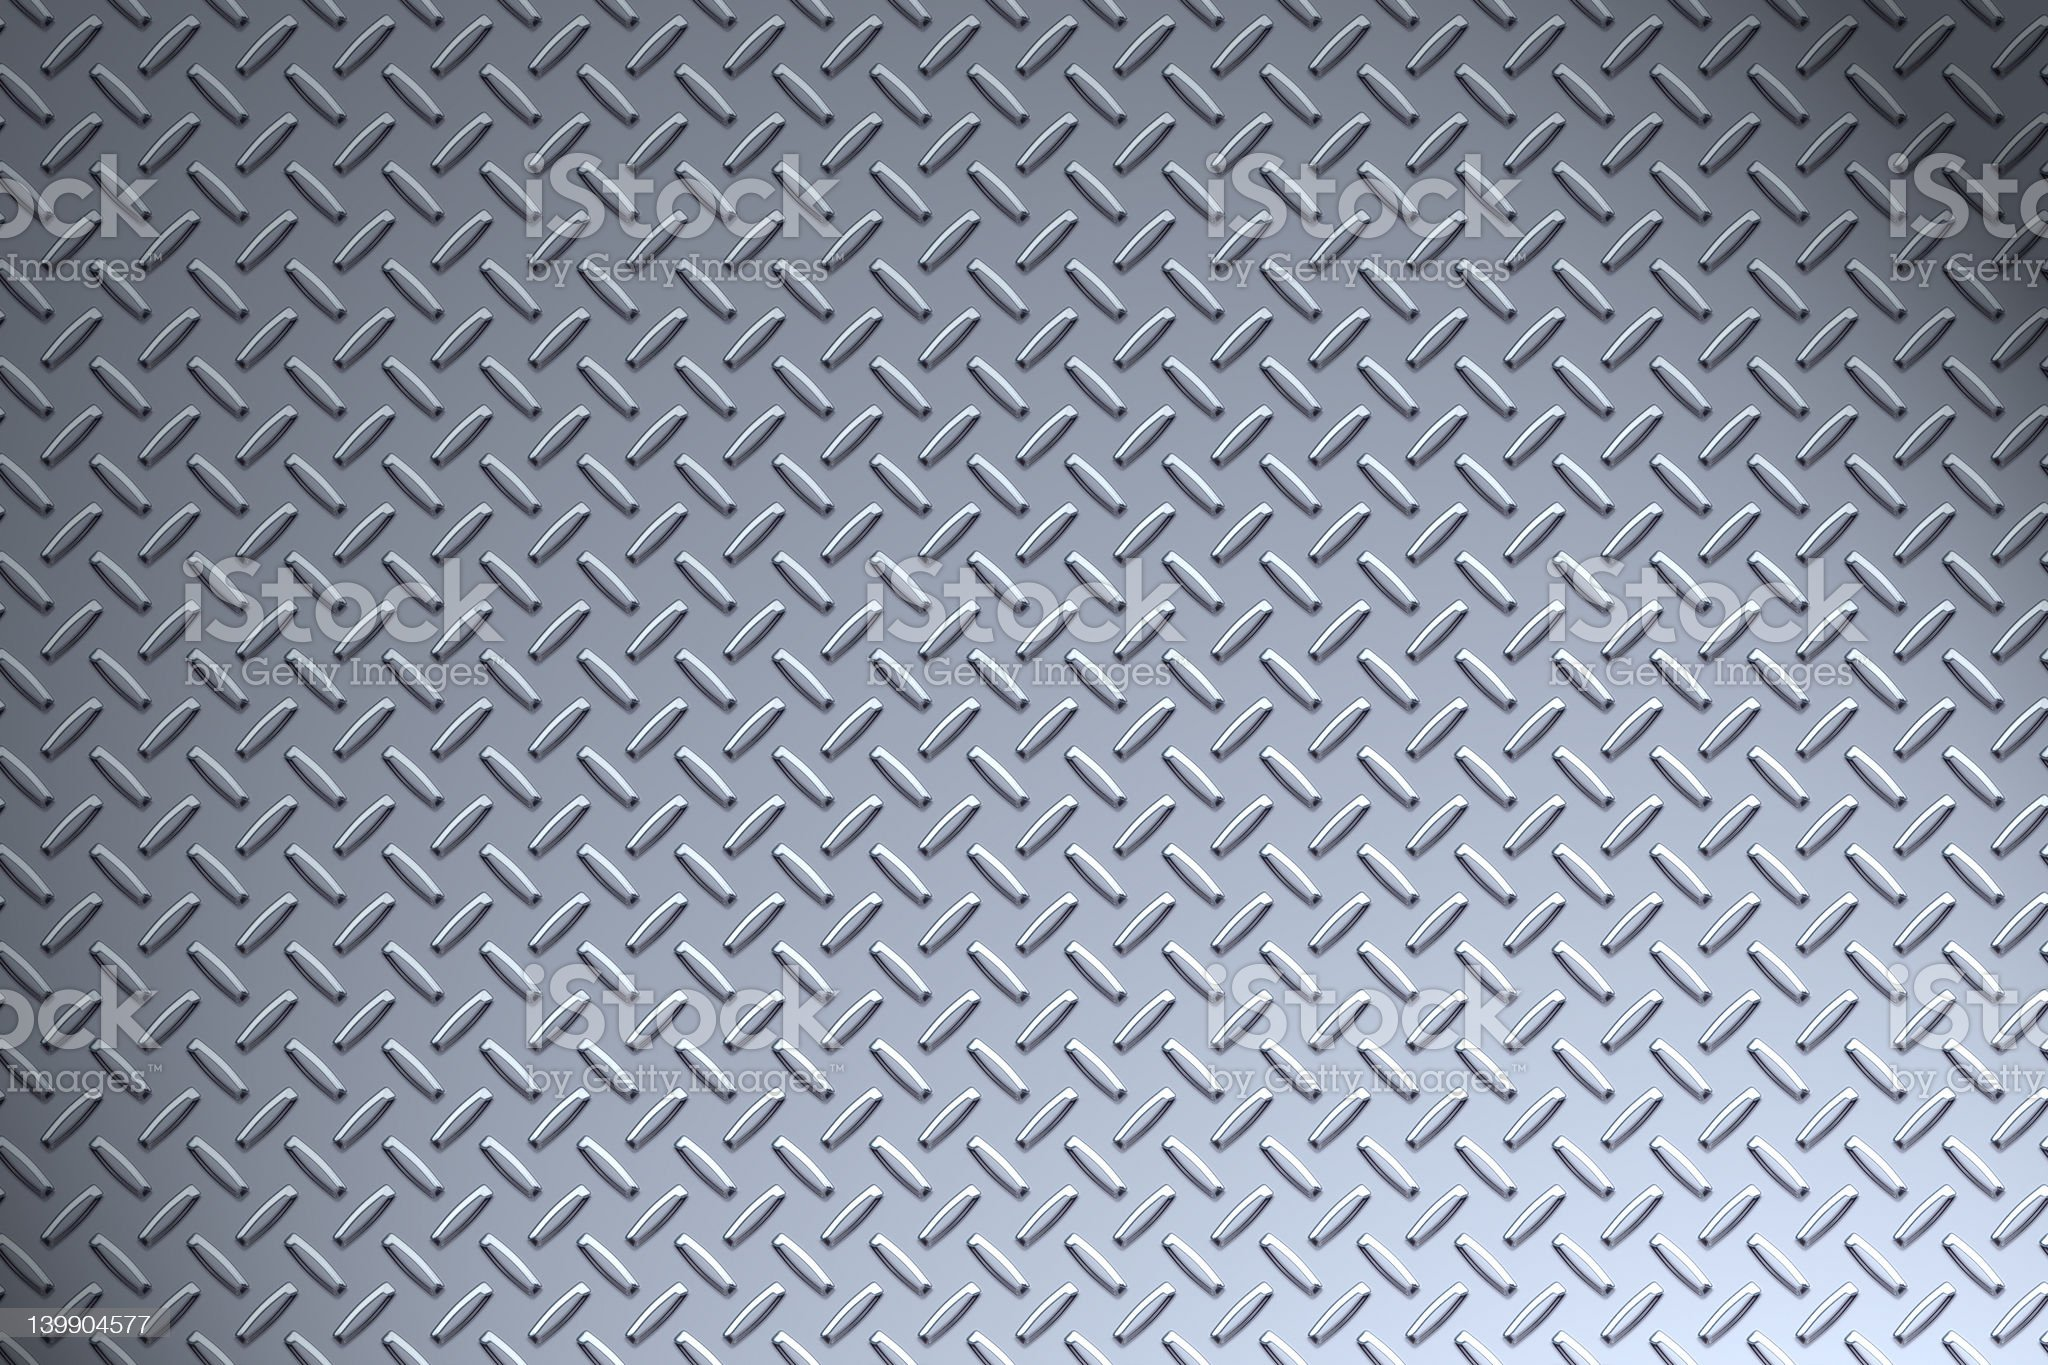 Metallic texture royalty-free stock photo